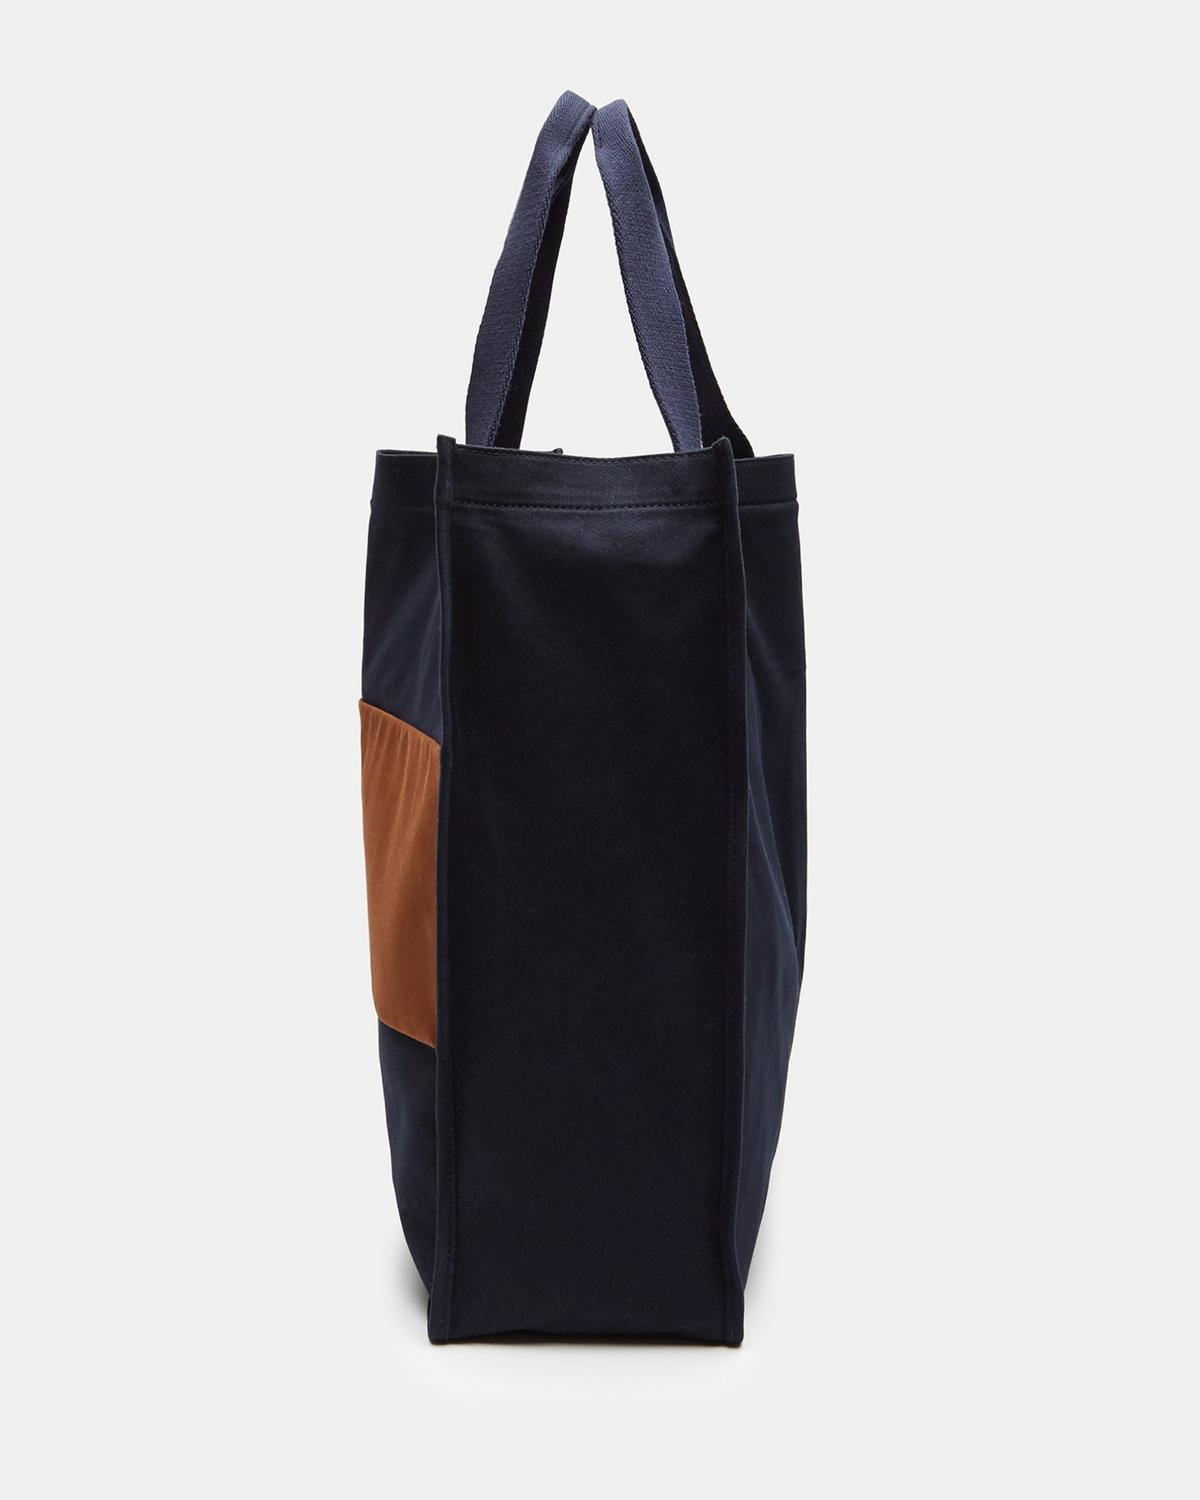 Colorblocked Market Tote